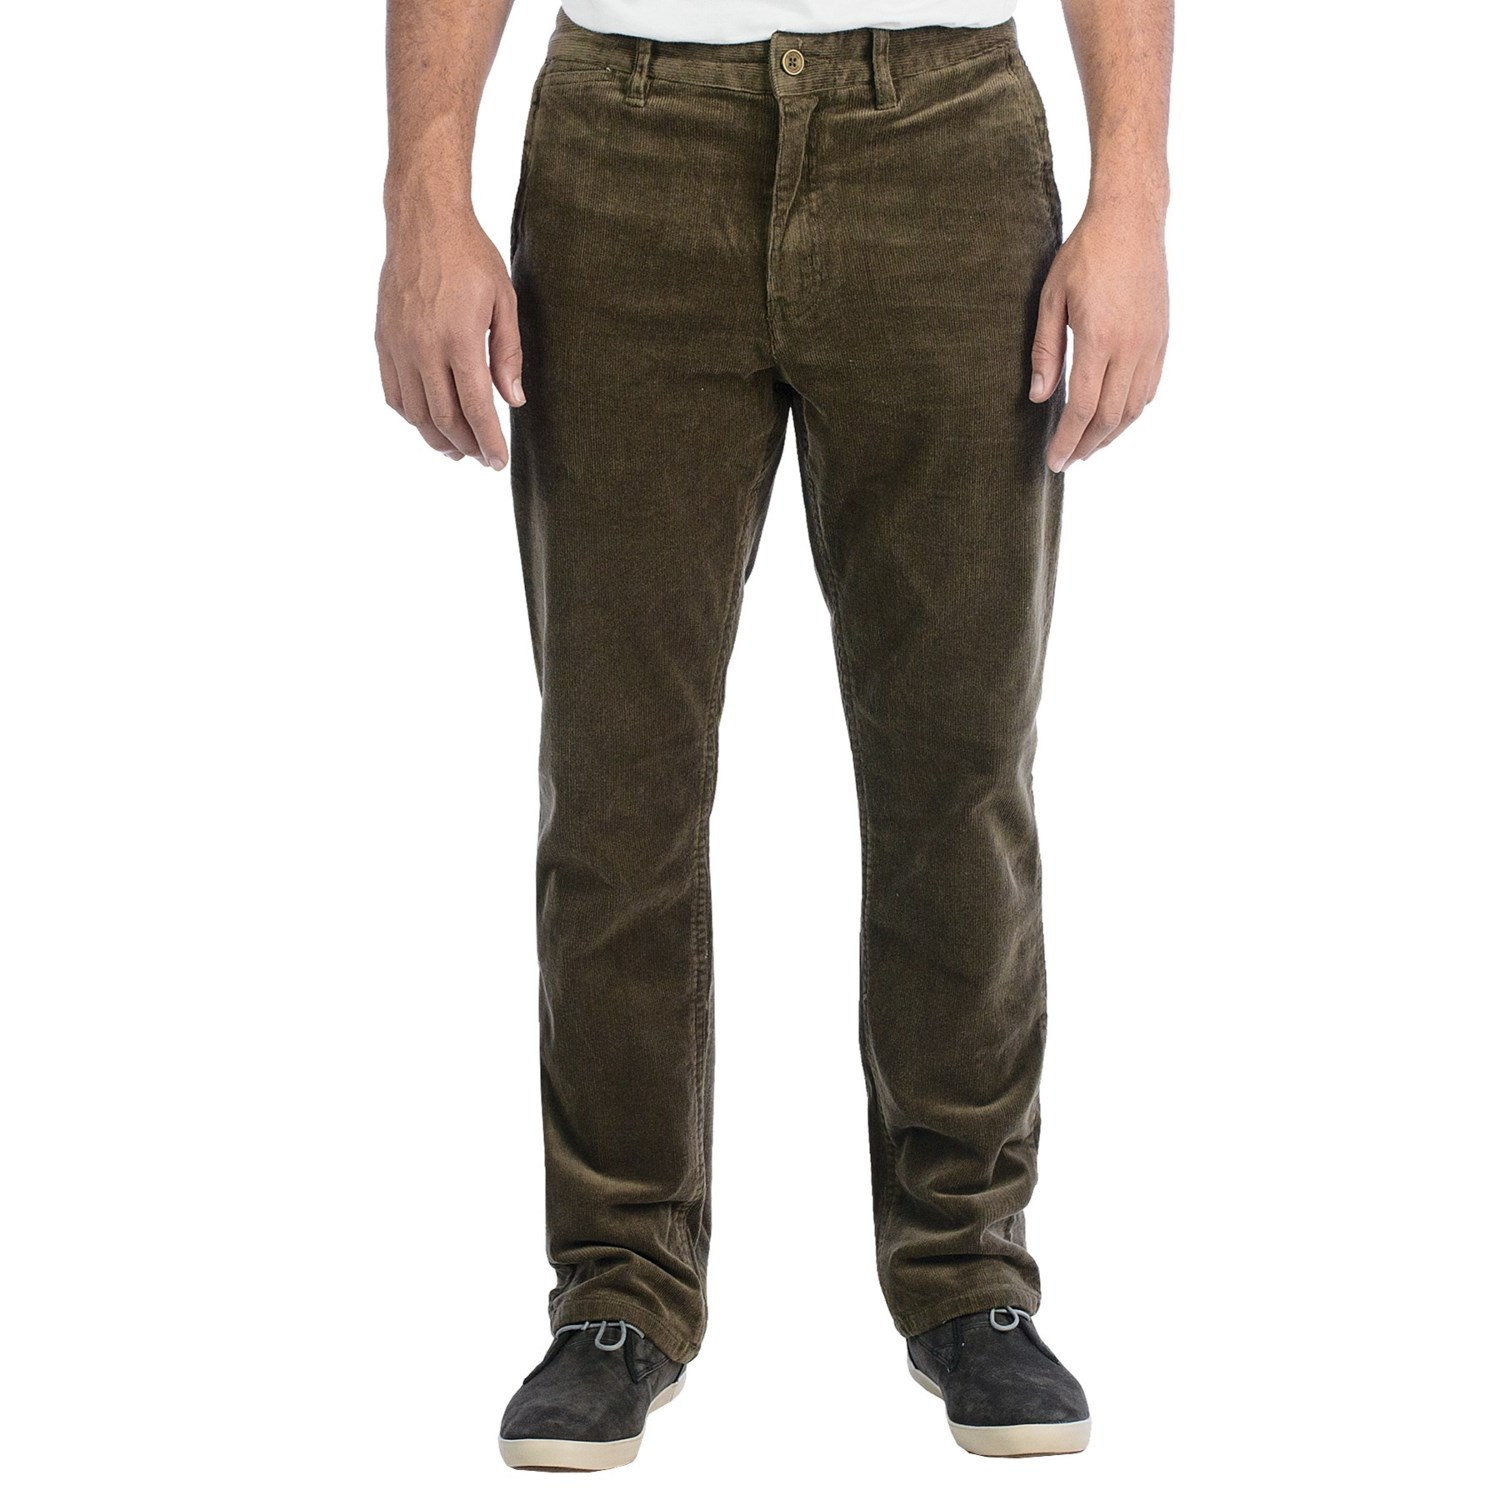 Shop eBay for great deals on Men's Corduroy Pants. You'll find new or used products in Men's Corduroy Pants on eBay. Free shipping on many items.